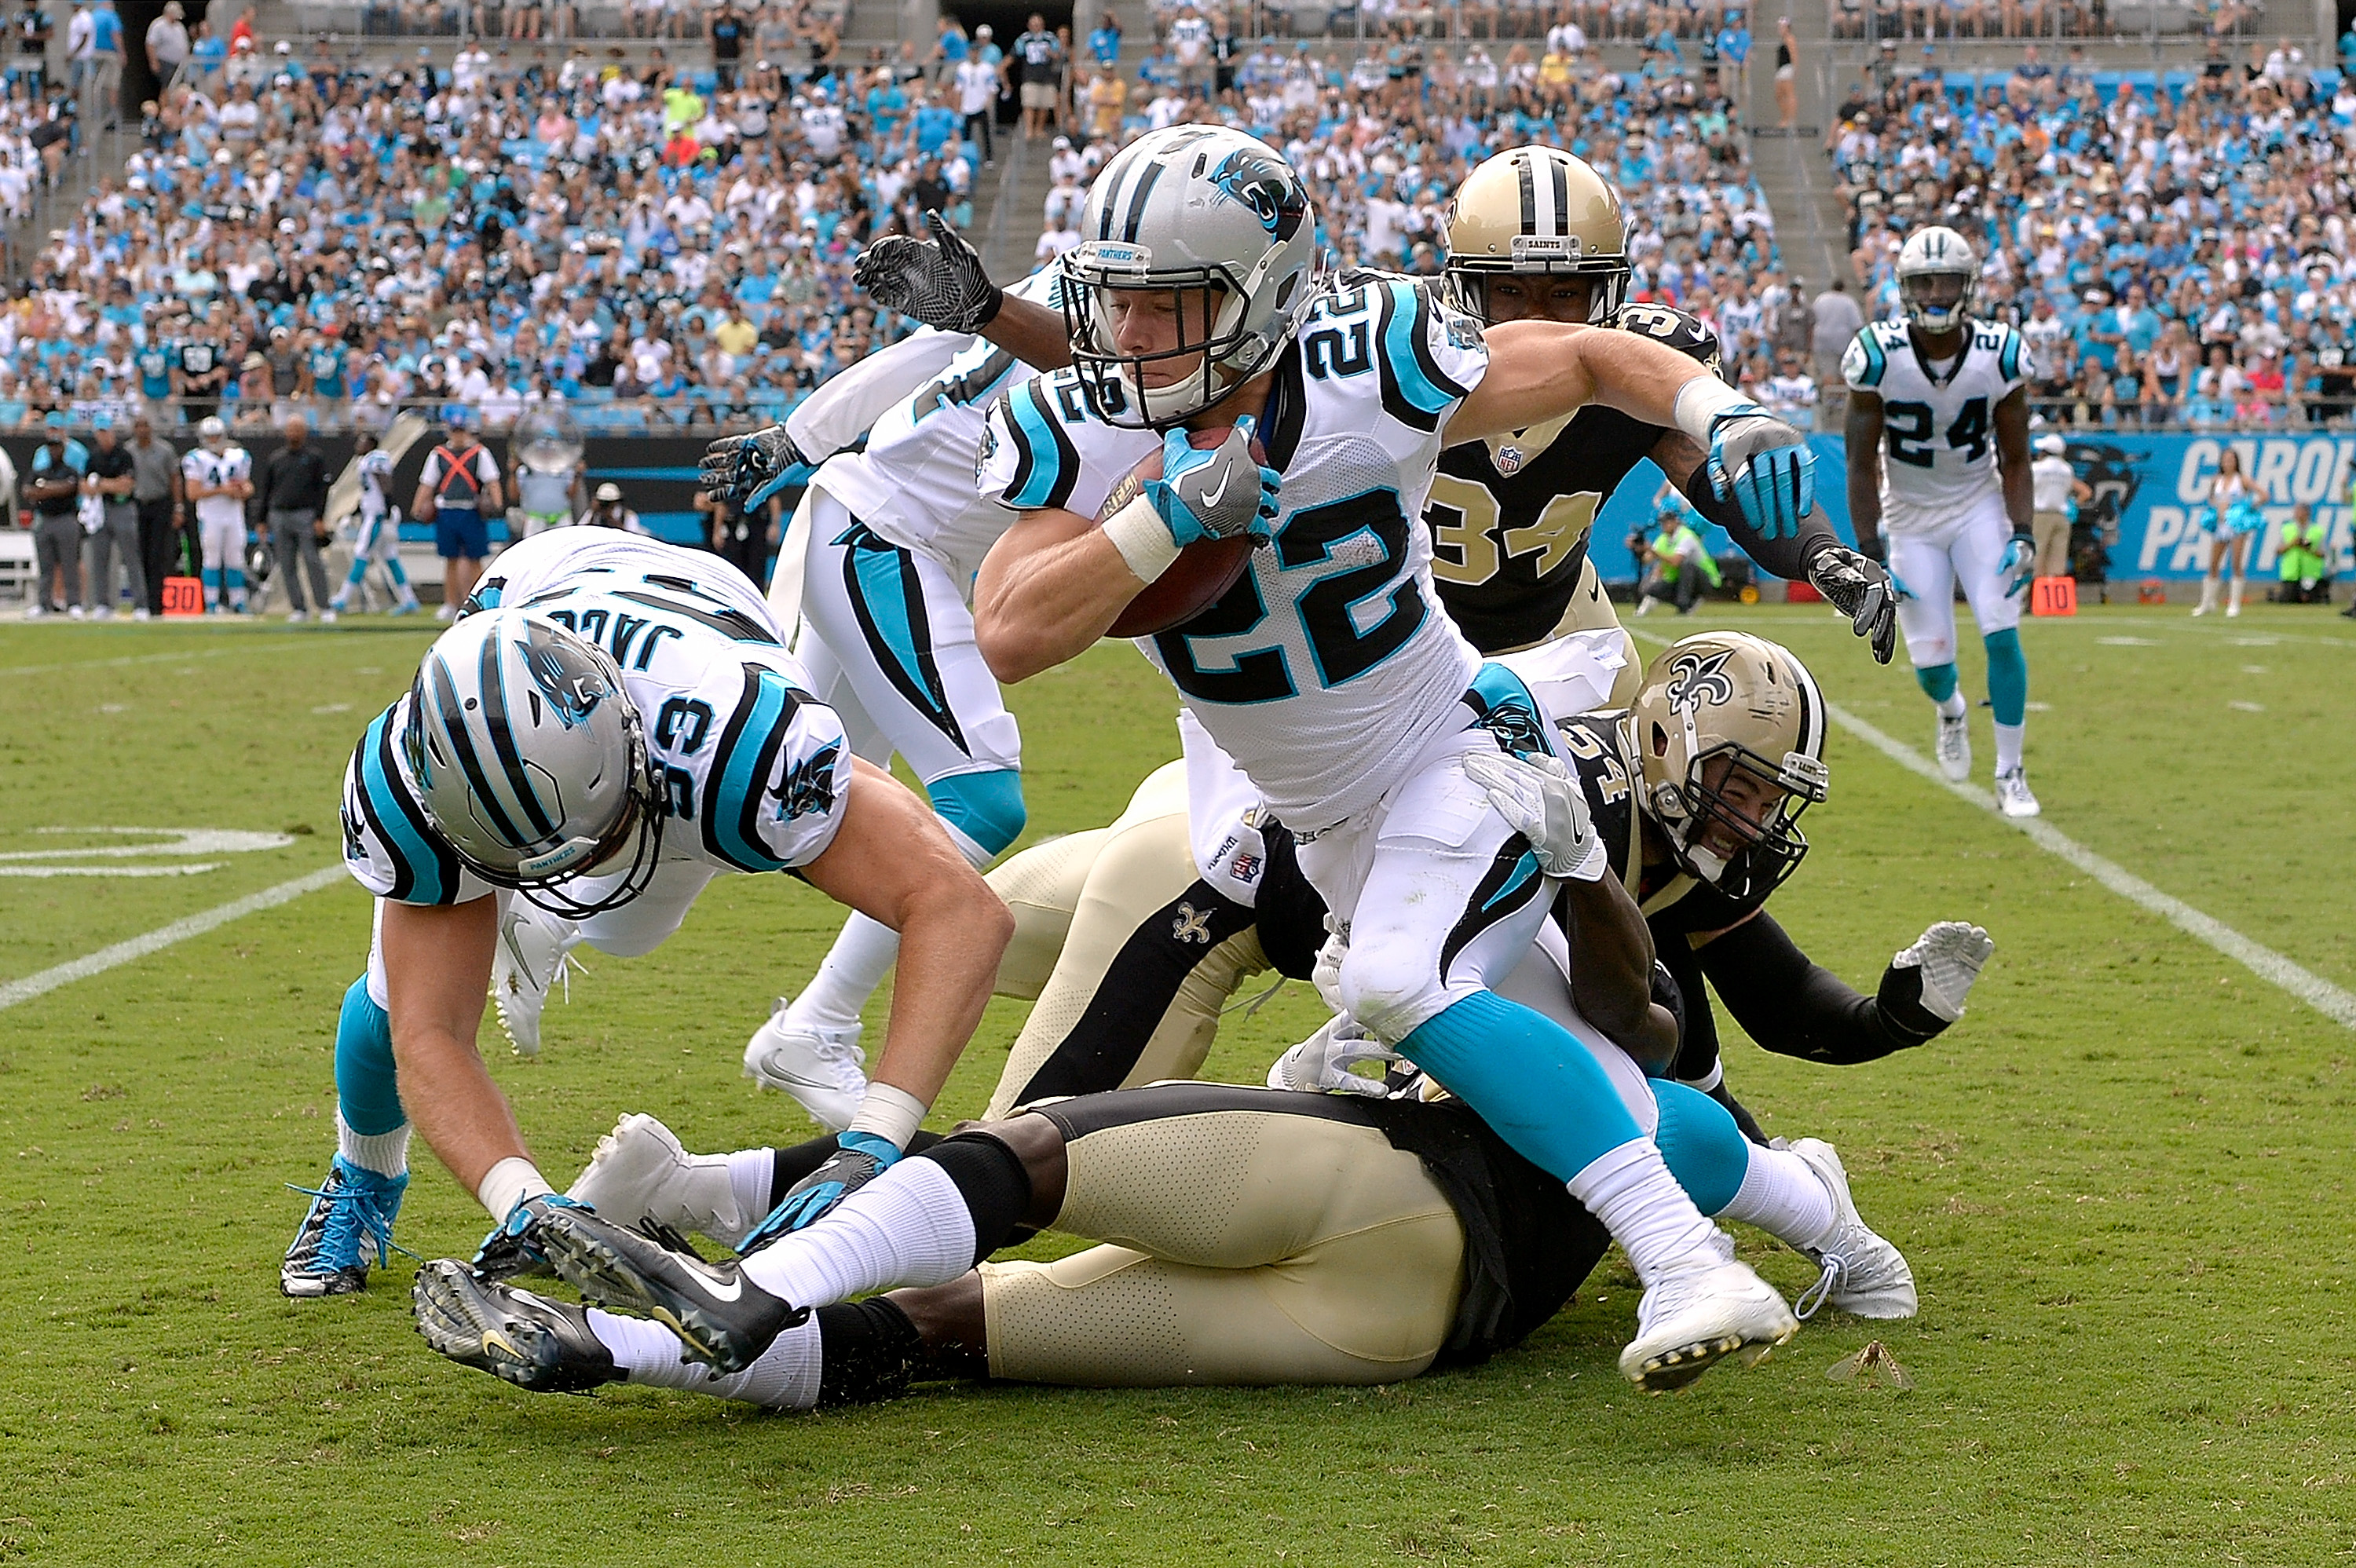 Sean Payton Takes Out The Broom As Saints Celebrate Sweep vs. Panthers